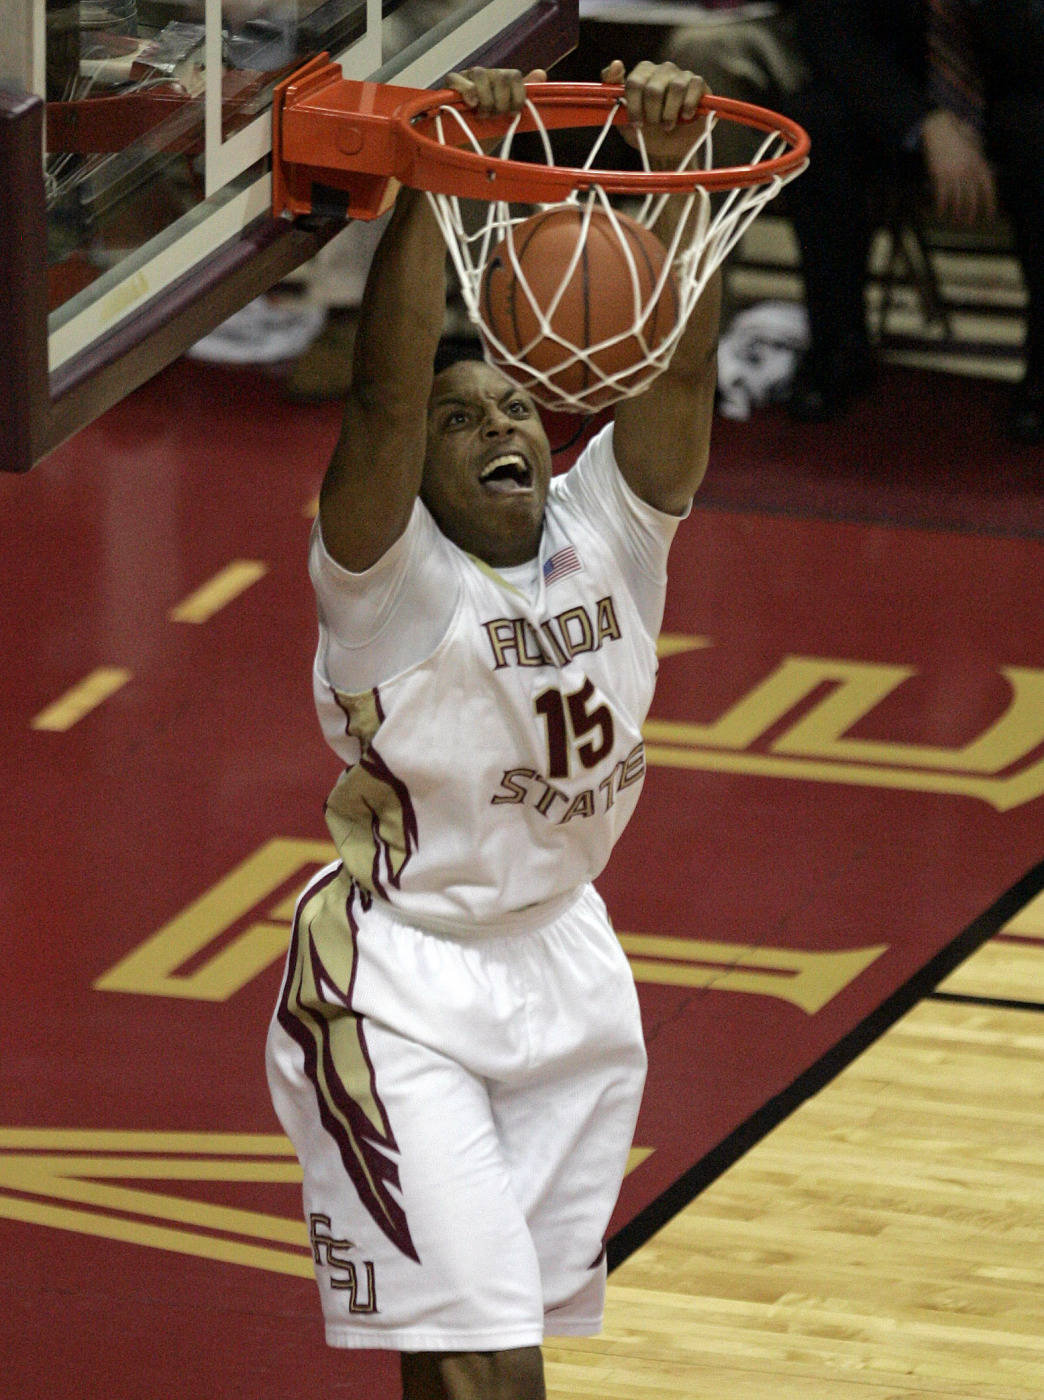 Florida State's Terrance Shannon dunks on a breakaway against Virginia Tech in the first half. (AP Photo/Steve Cannon)